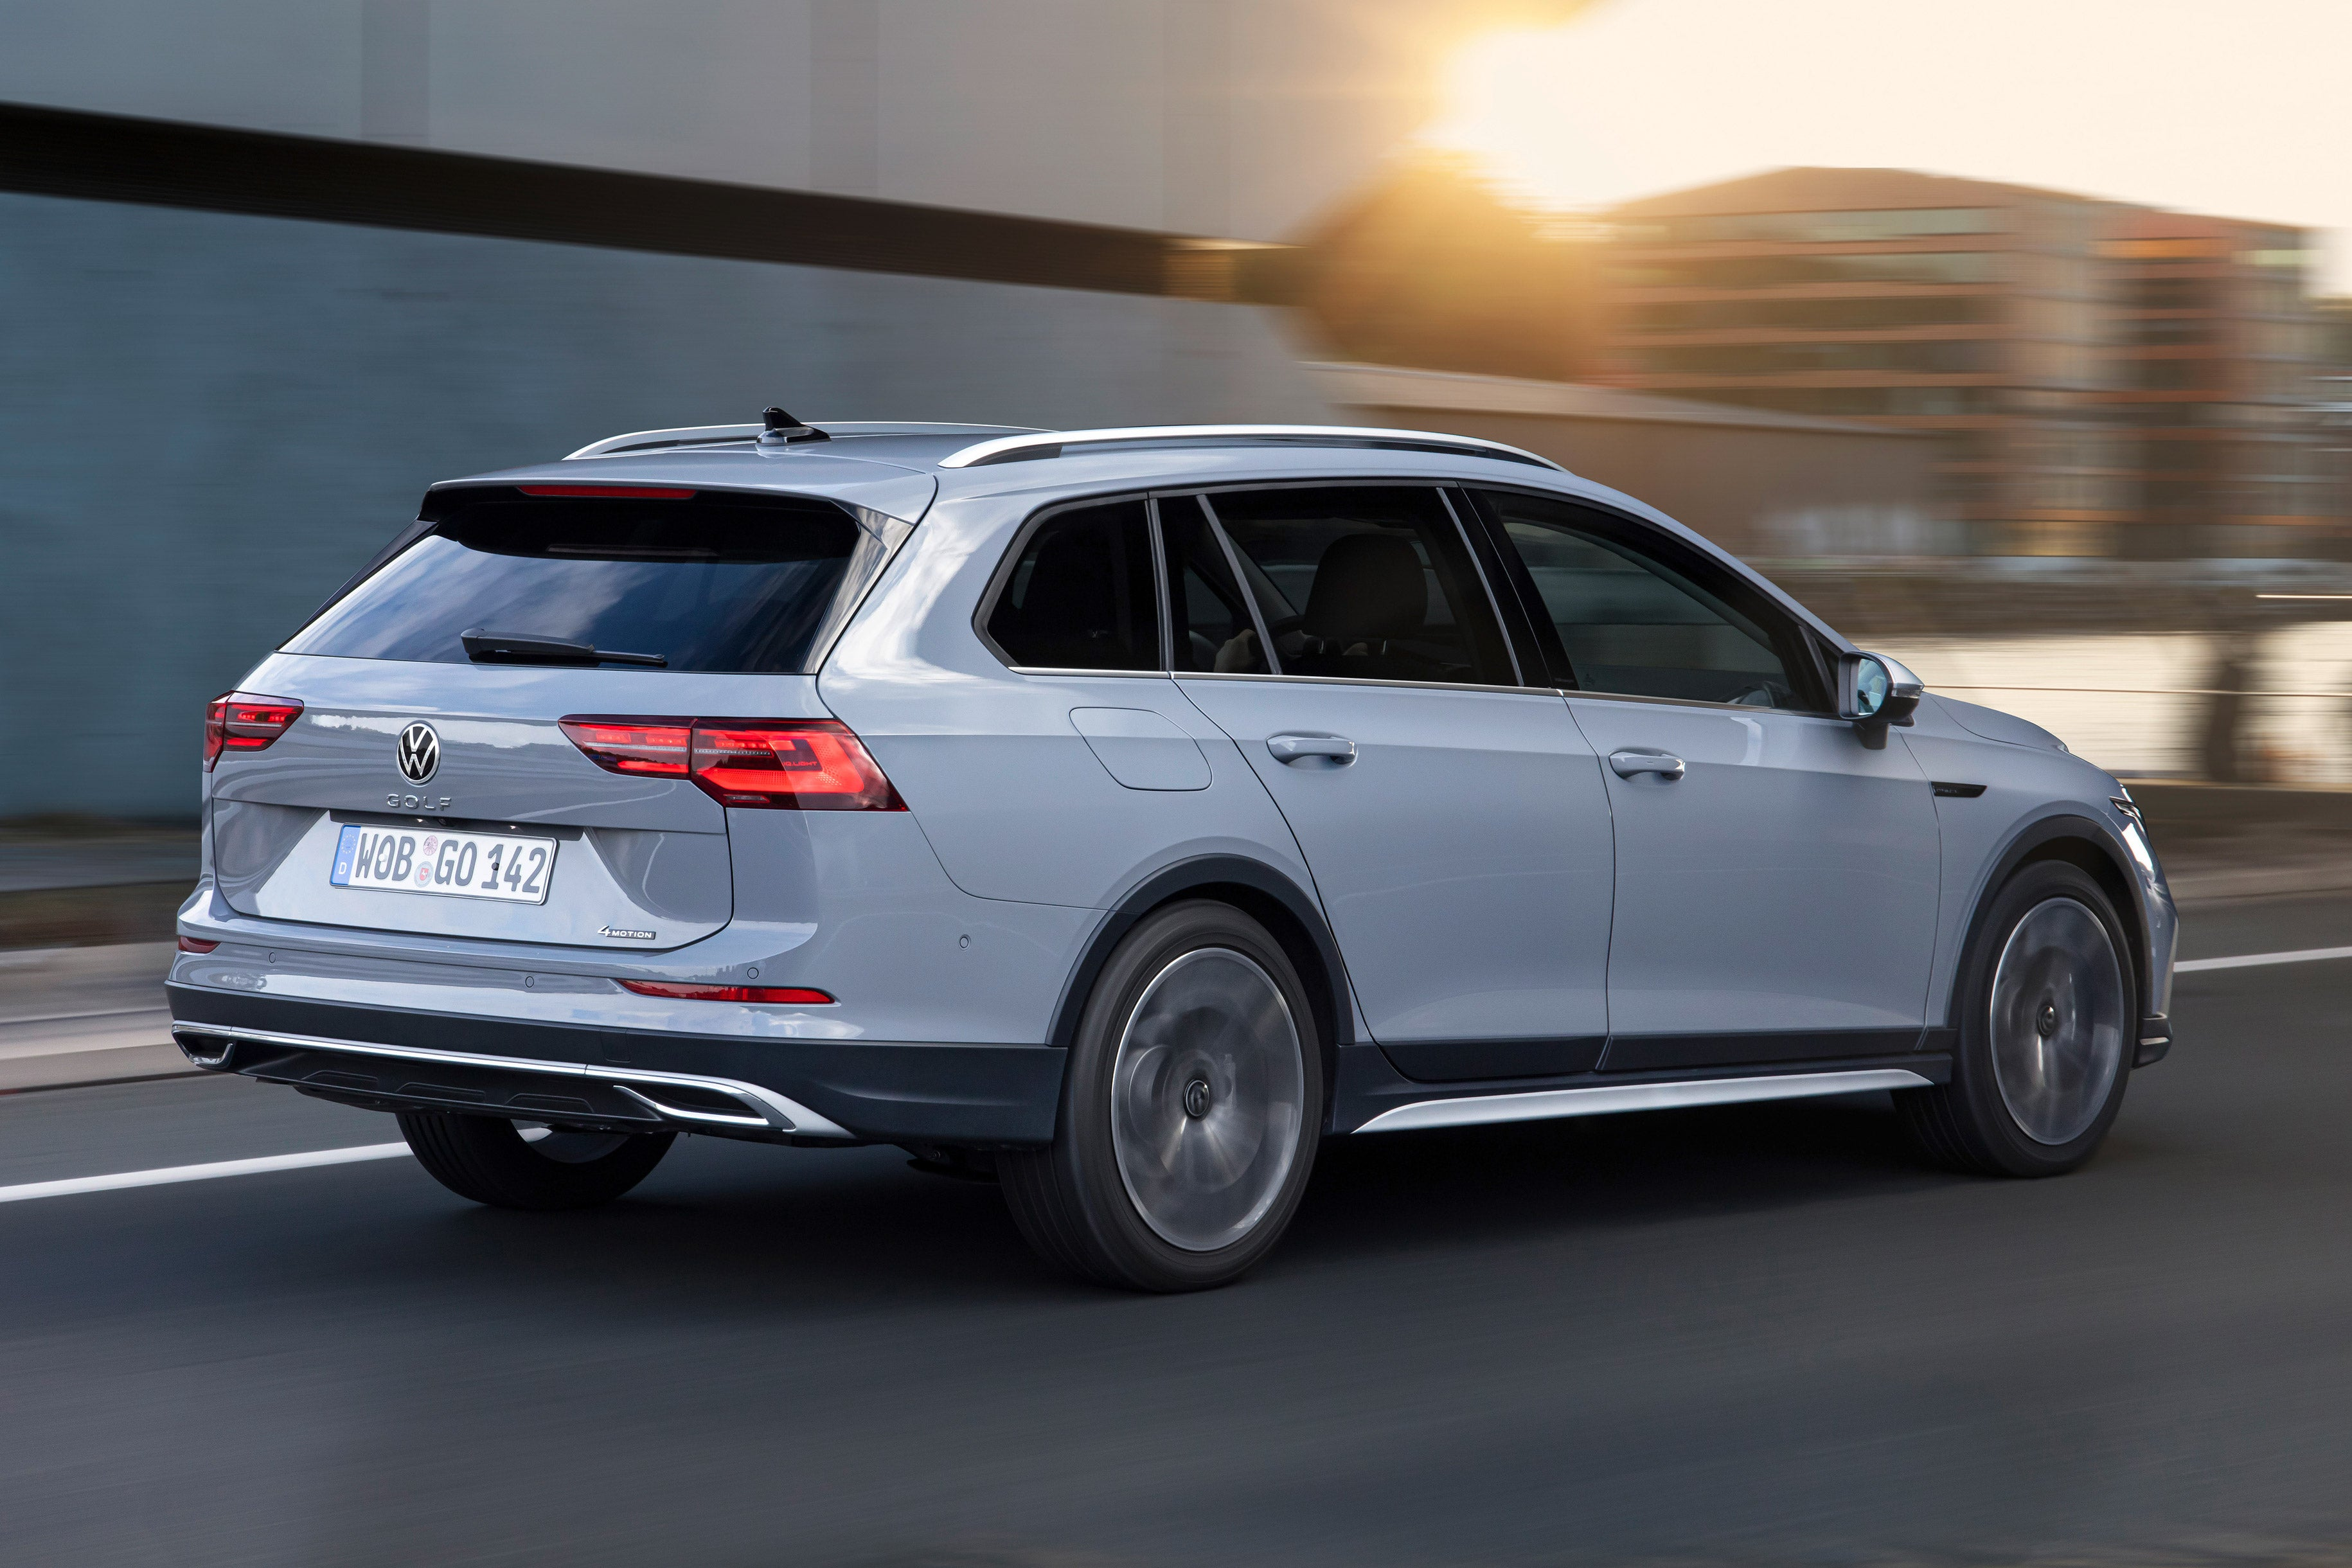 Spot the Alltrack features: namely exterior body cladding and a small increase in ride height